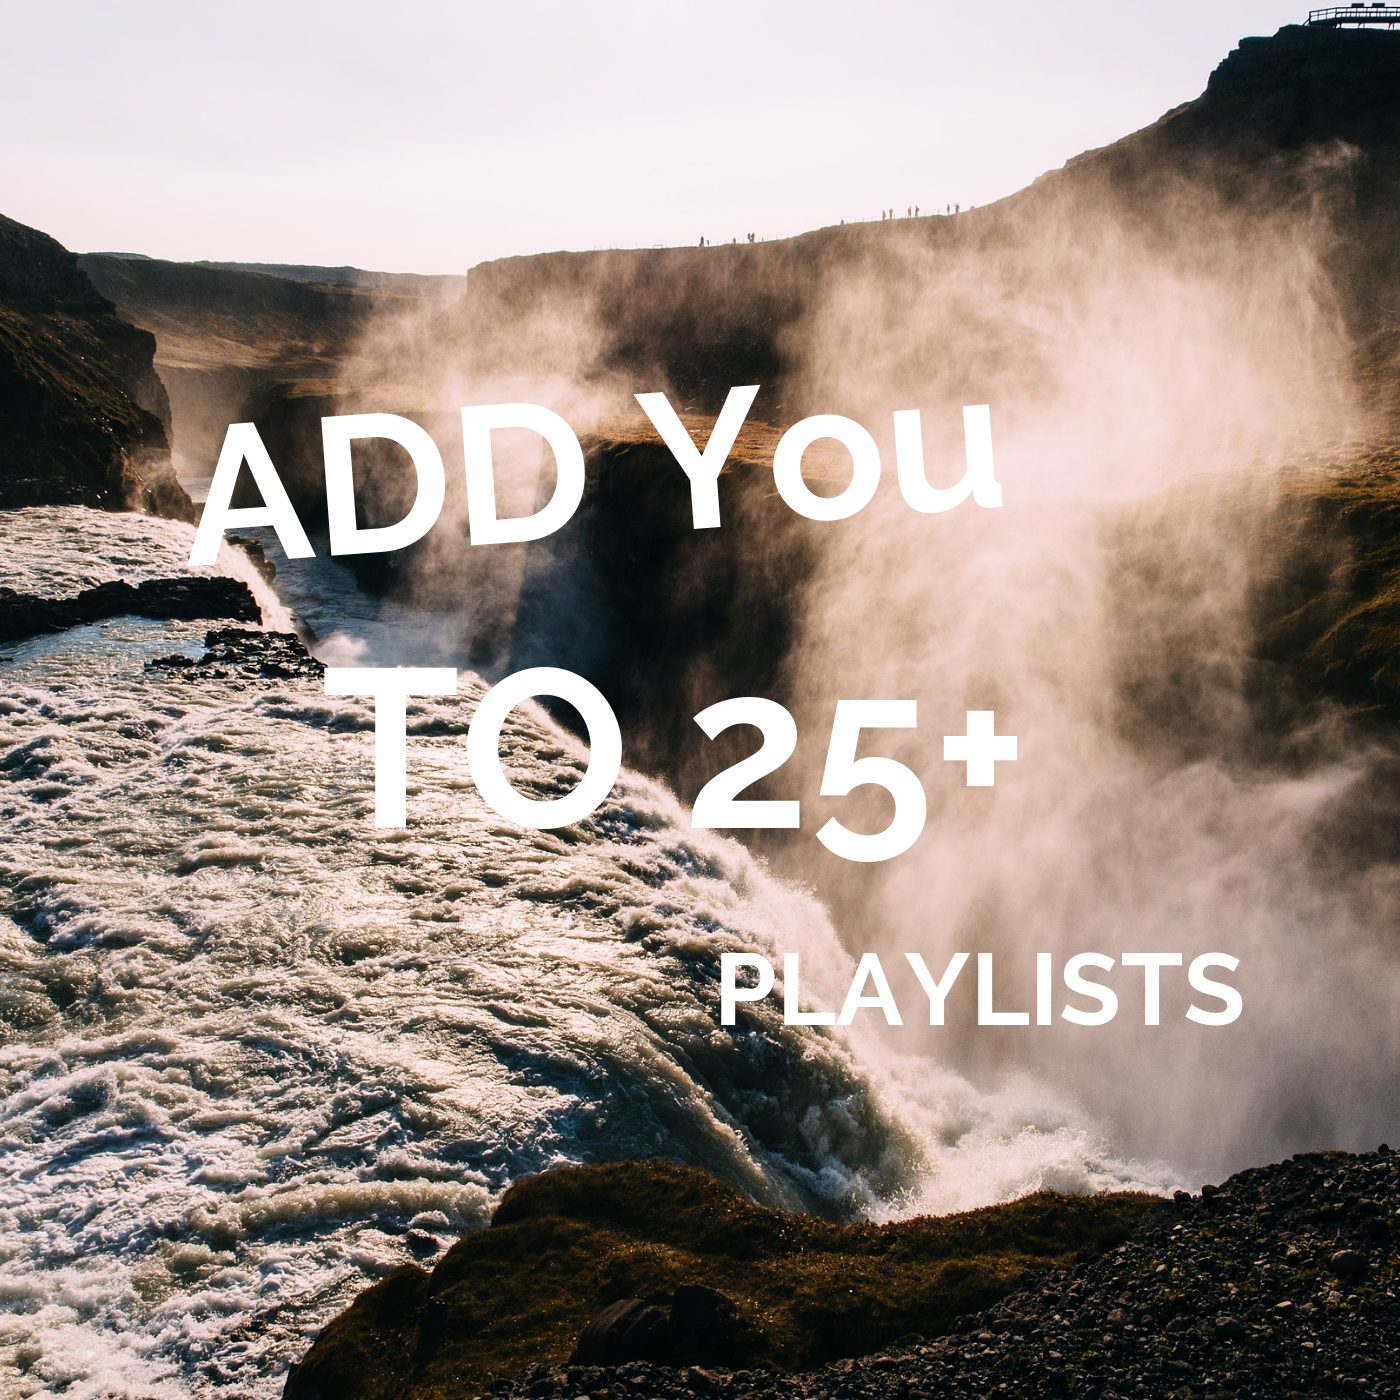 Spotfy 25 Playlist Adds for Your song